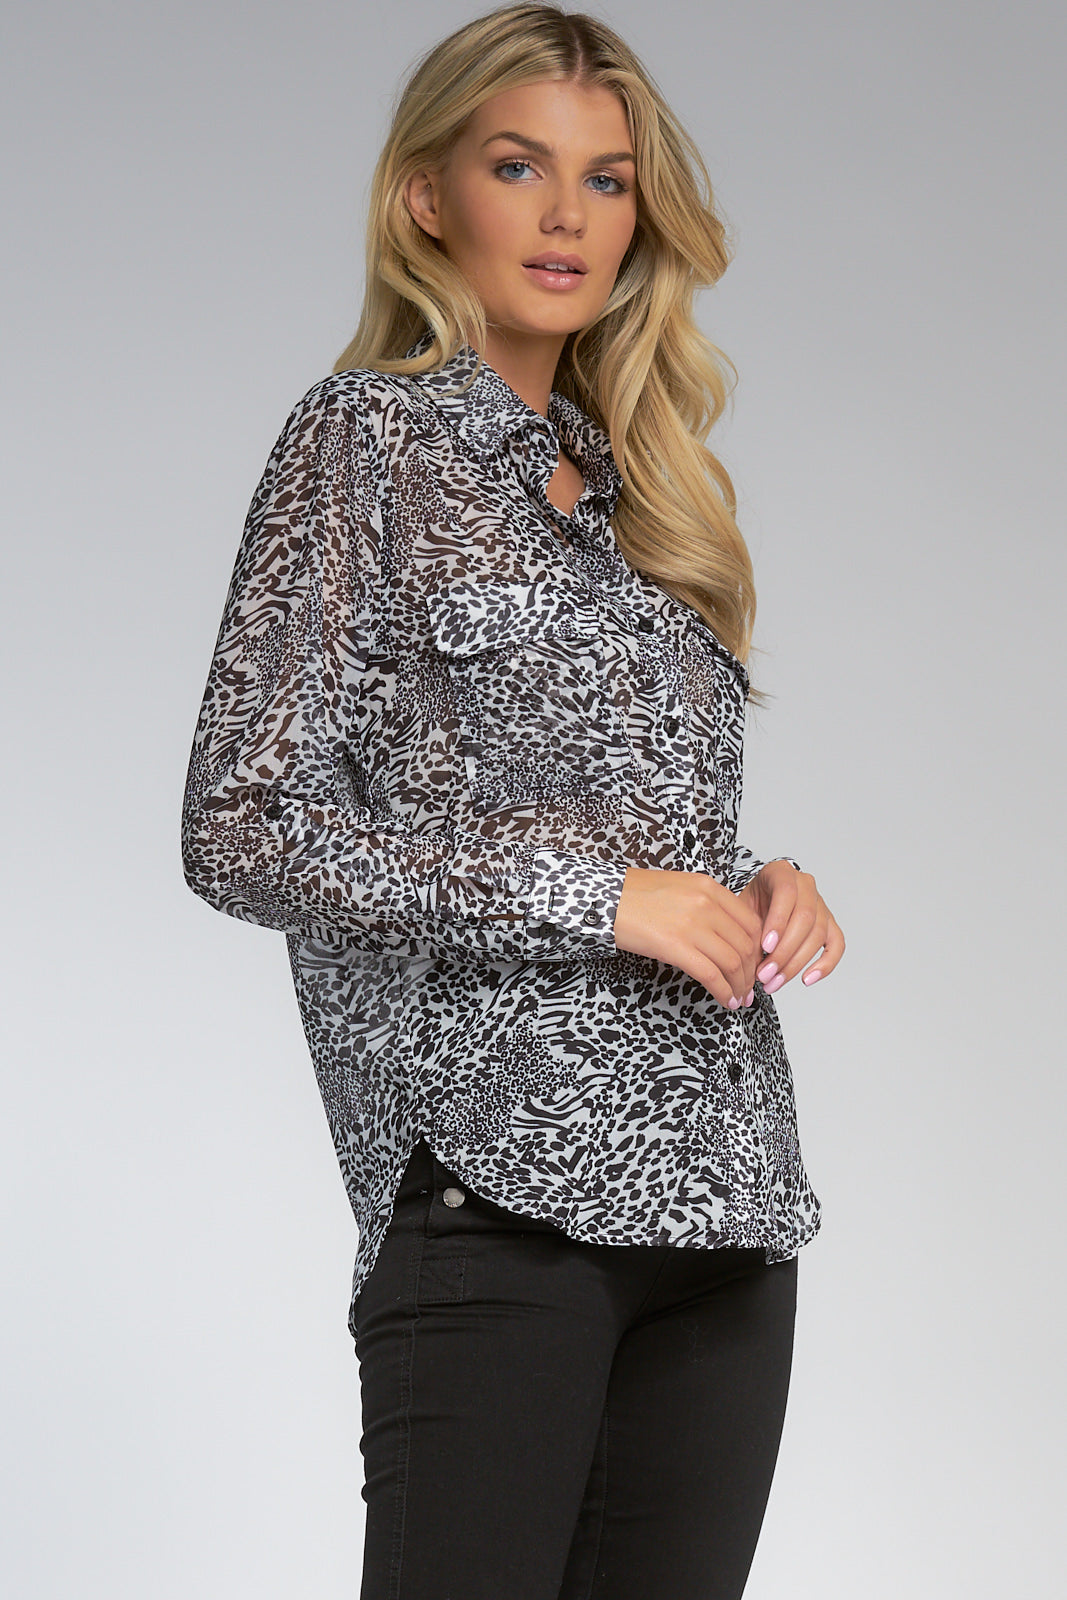 Black/White Animal Print Button Down Top